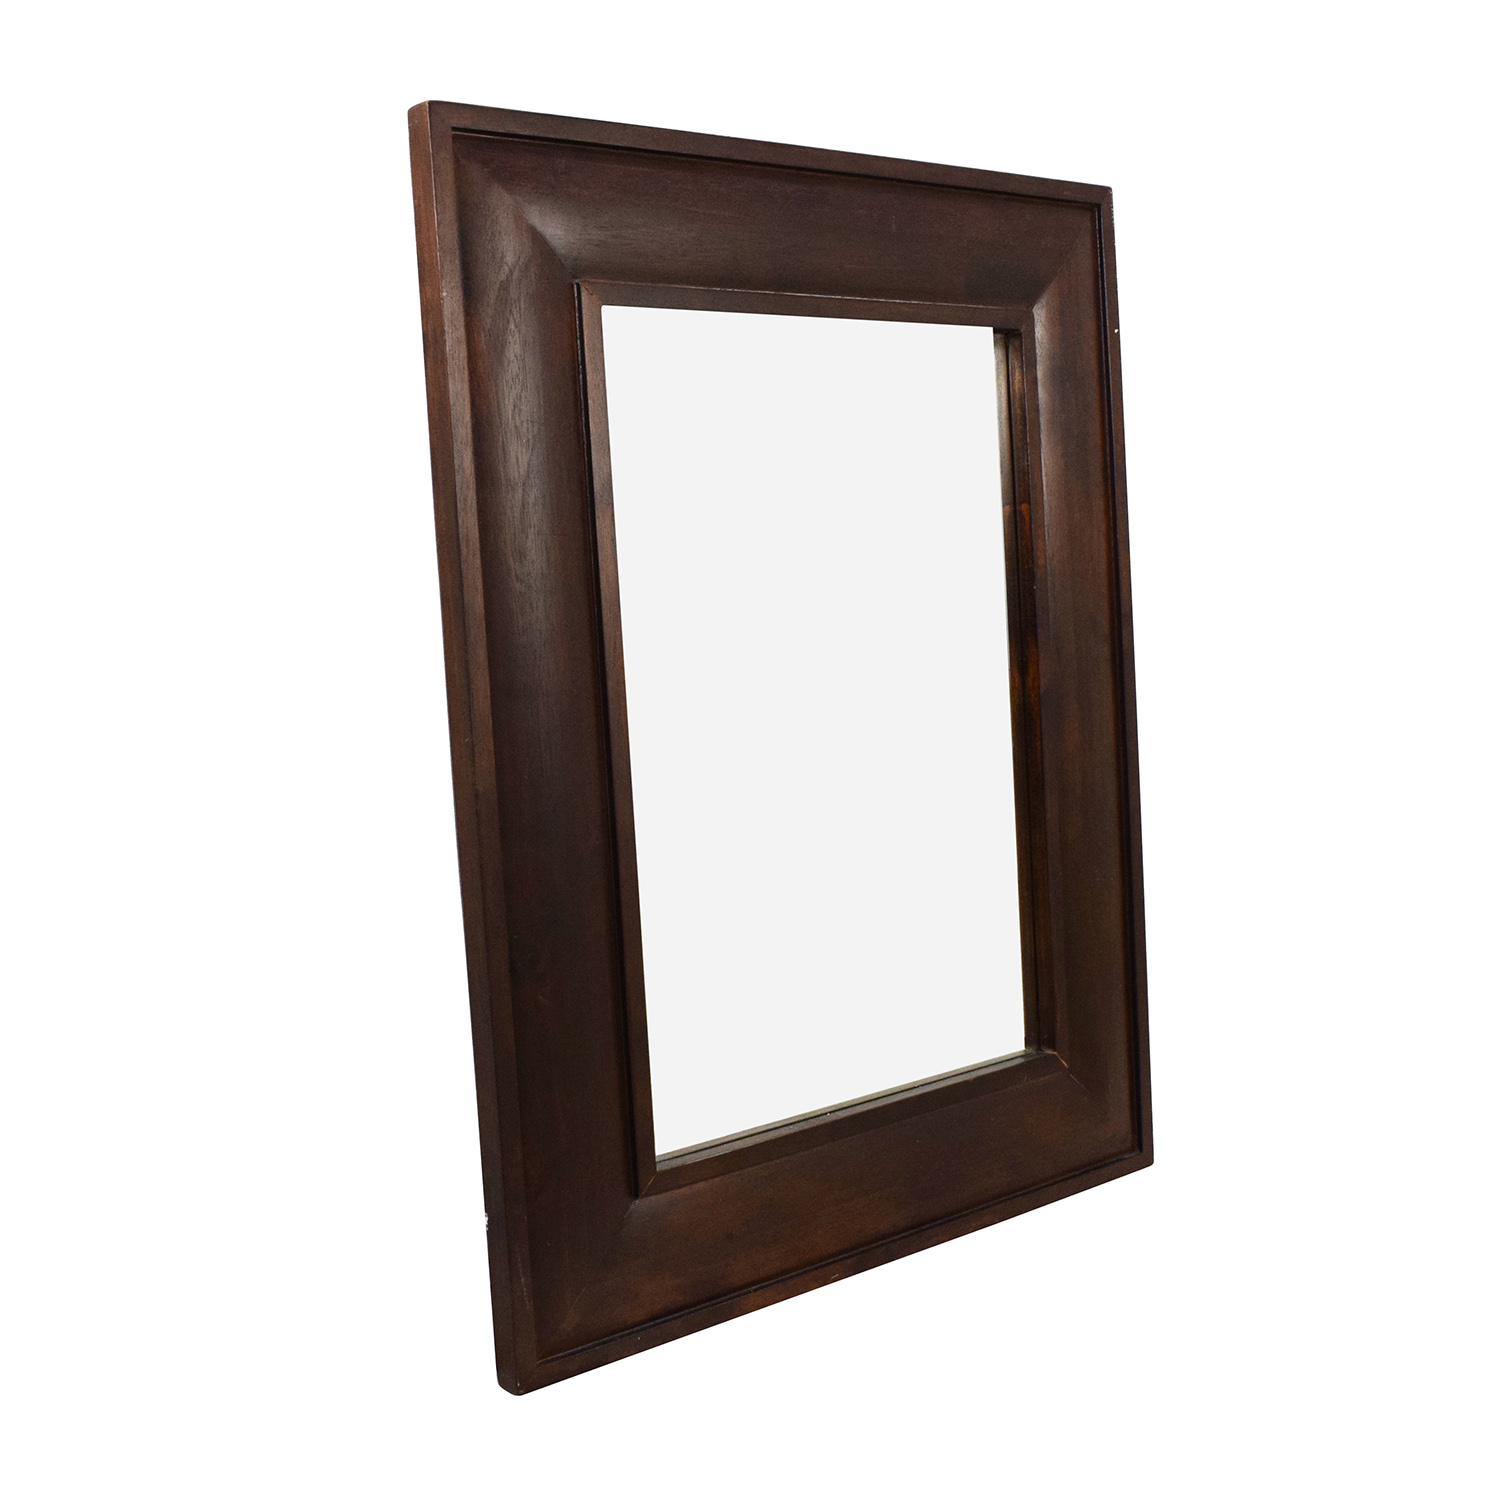 Square Wood Framed Hanging Mirror coupon